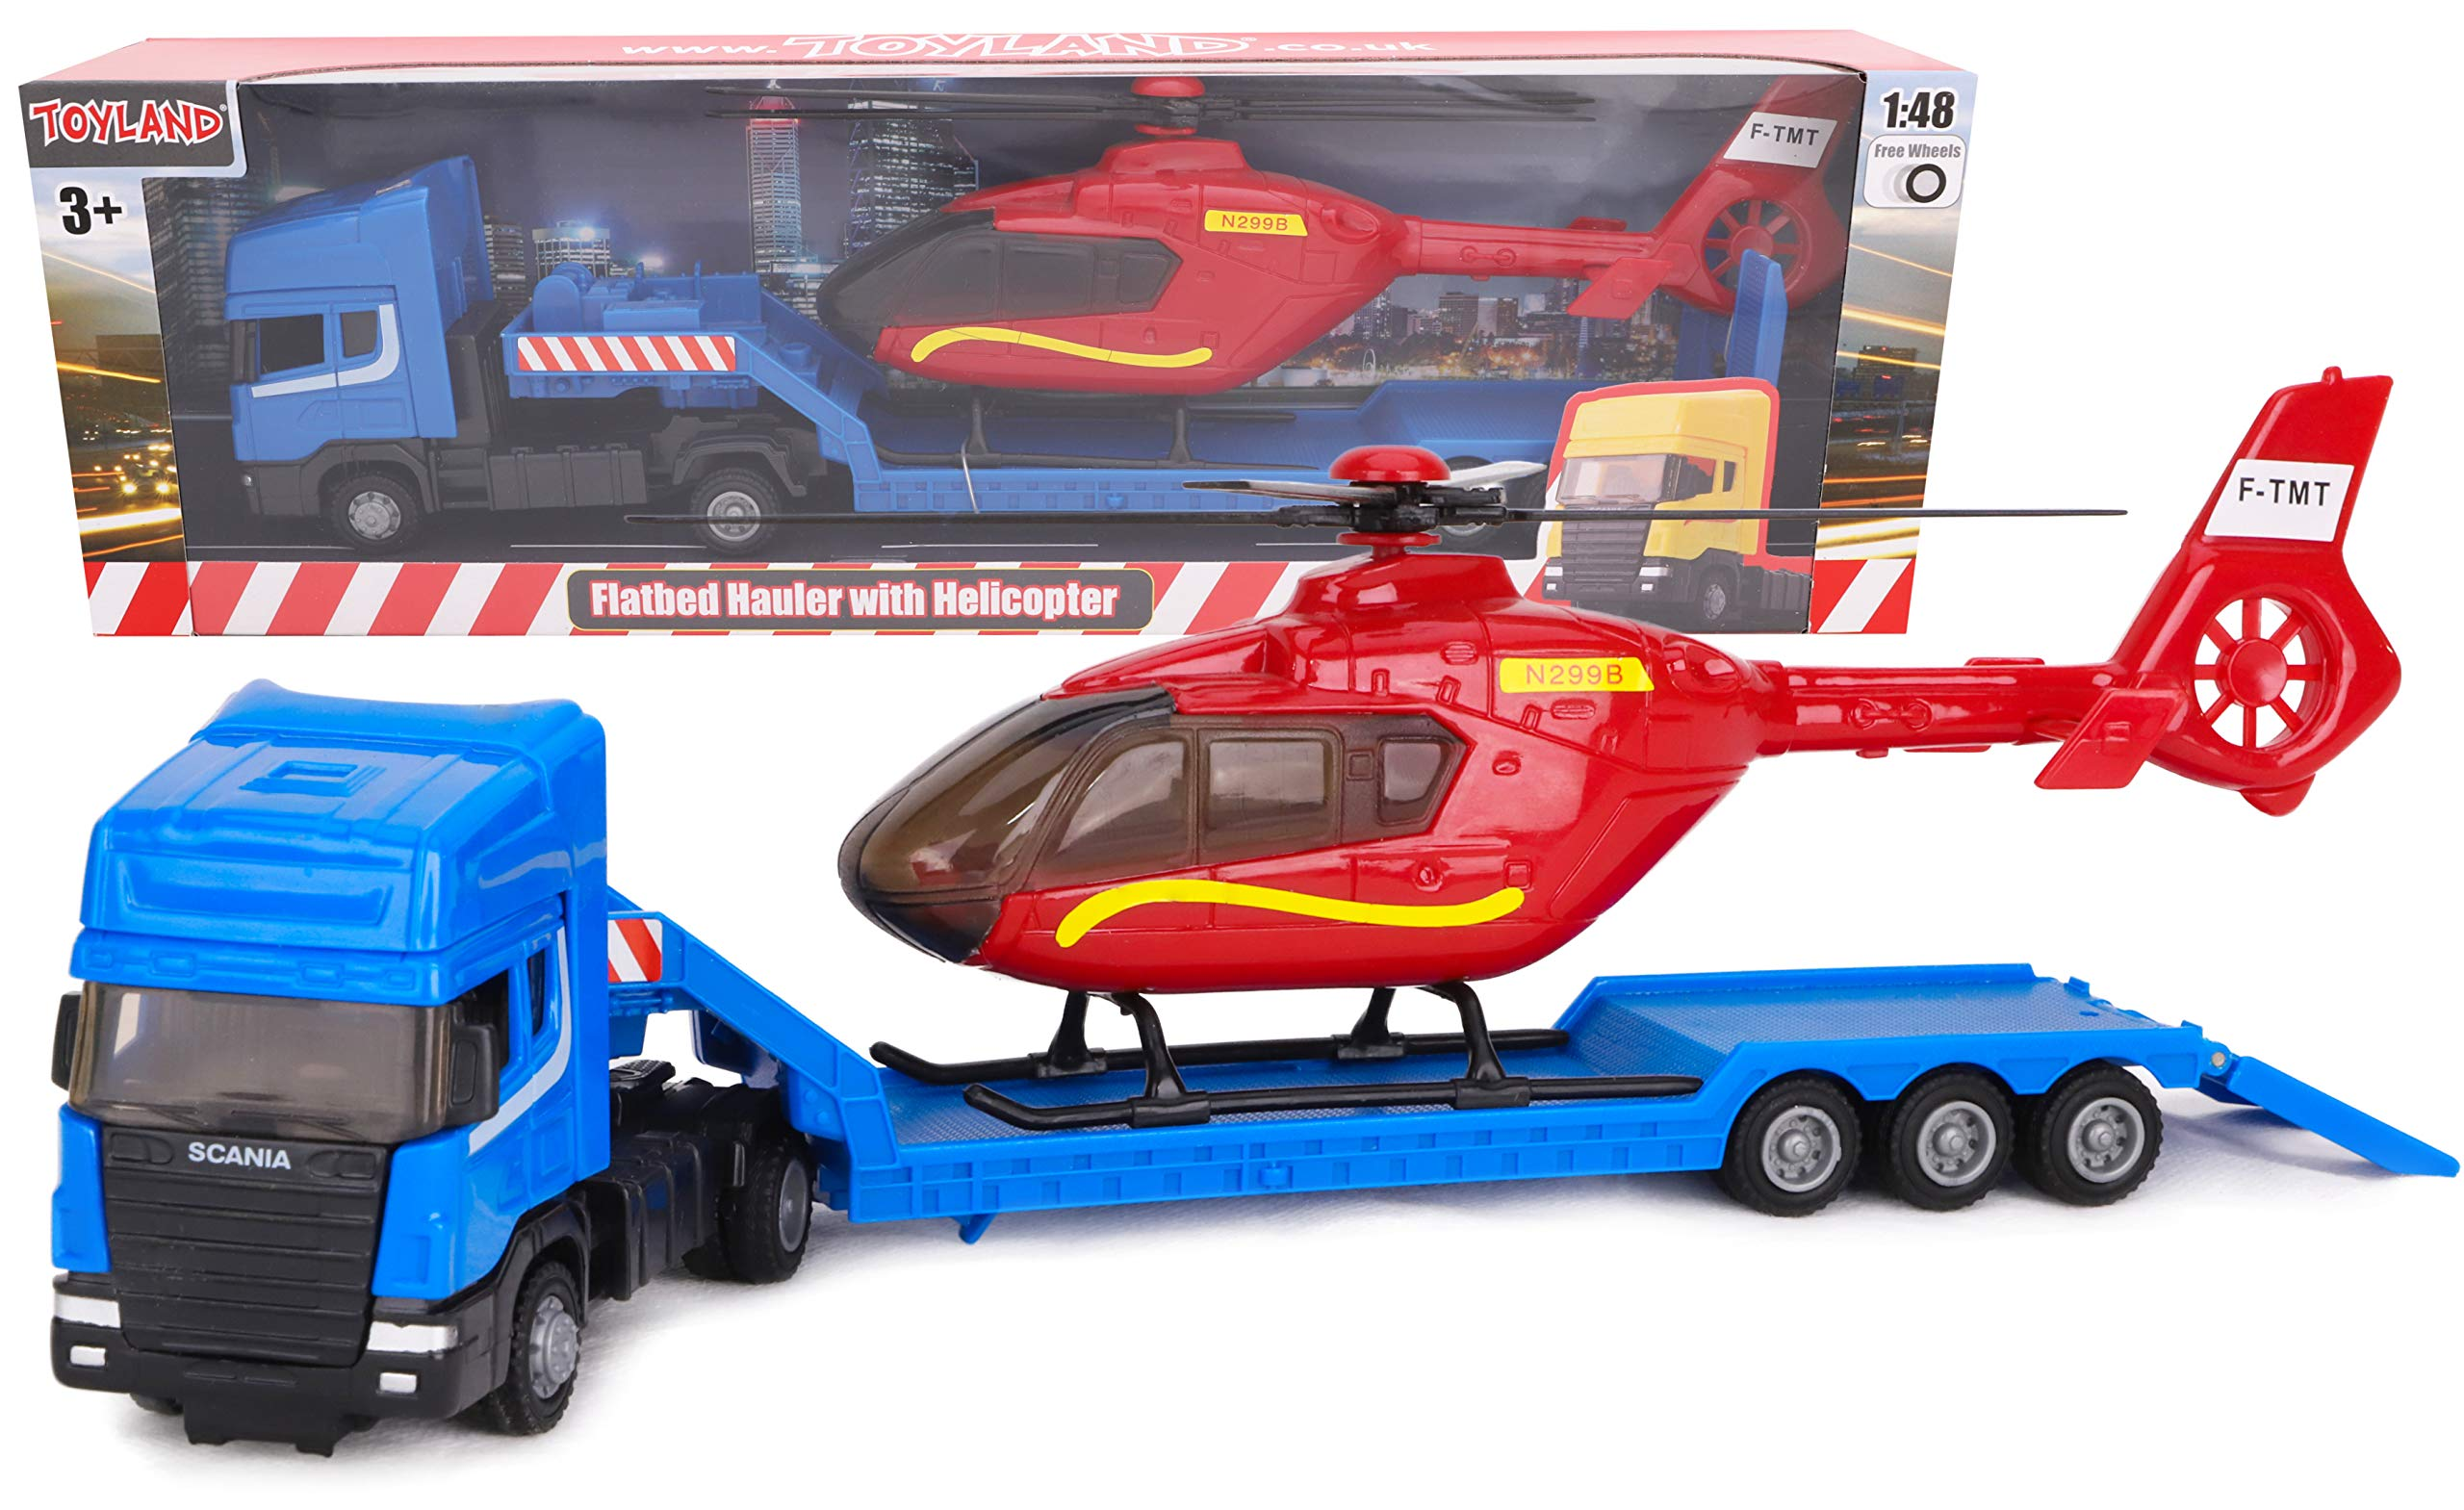 Toyland® Scania Flatbed Hauler With Helicopter - 1:48 Scale - Free Wheel - Transport Vehicle Toys - Vehicle Collectables - Boys Toys